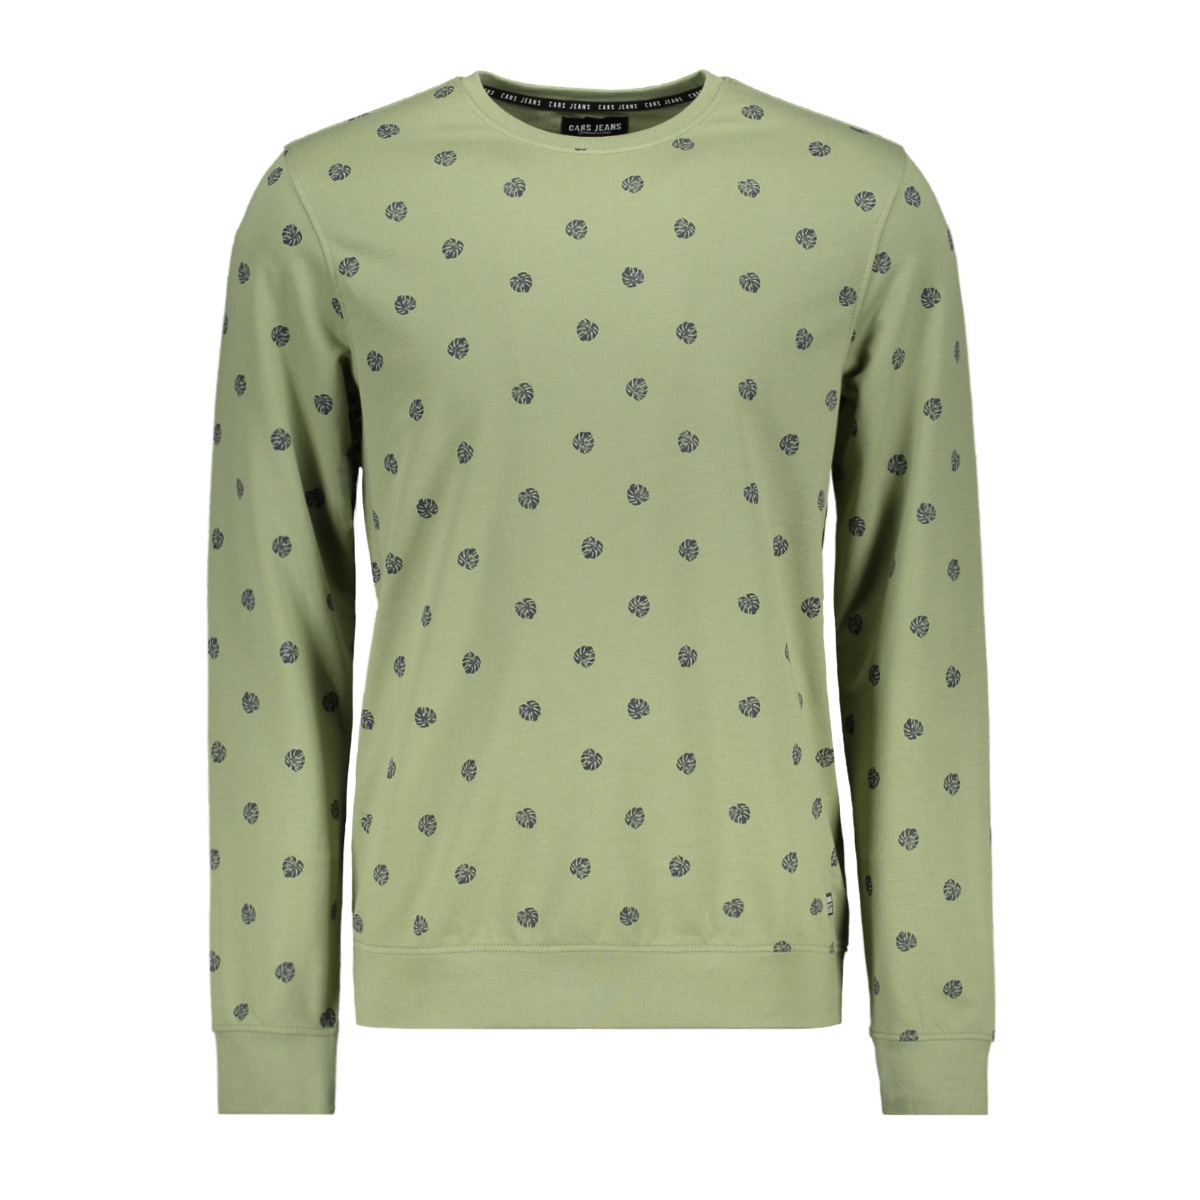 chris sw 40480 cars sweater 18 olive